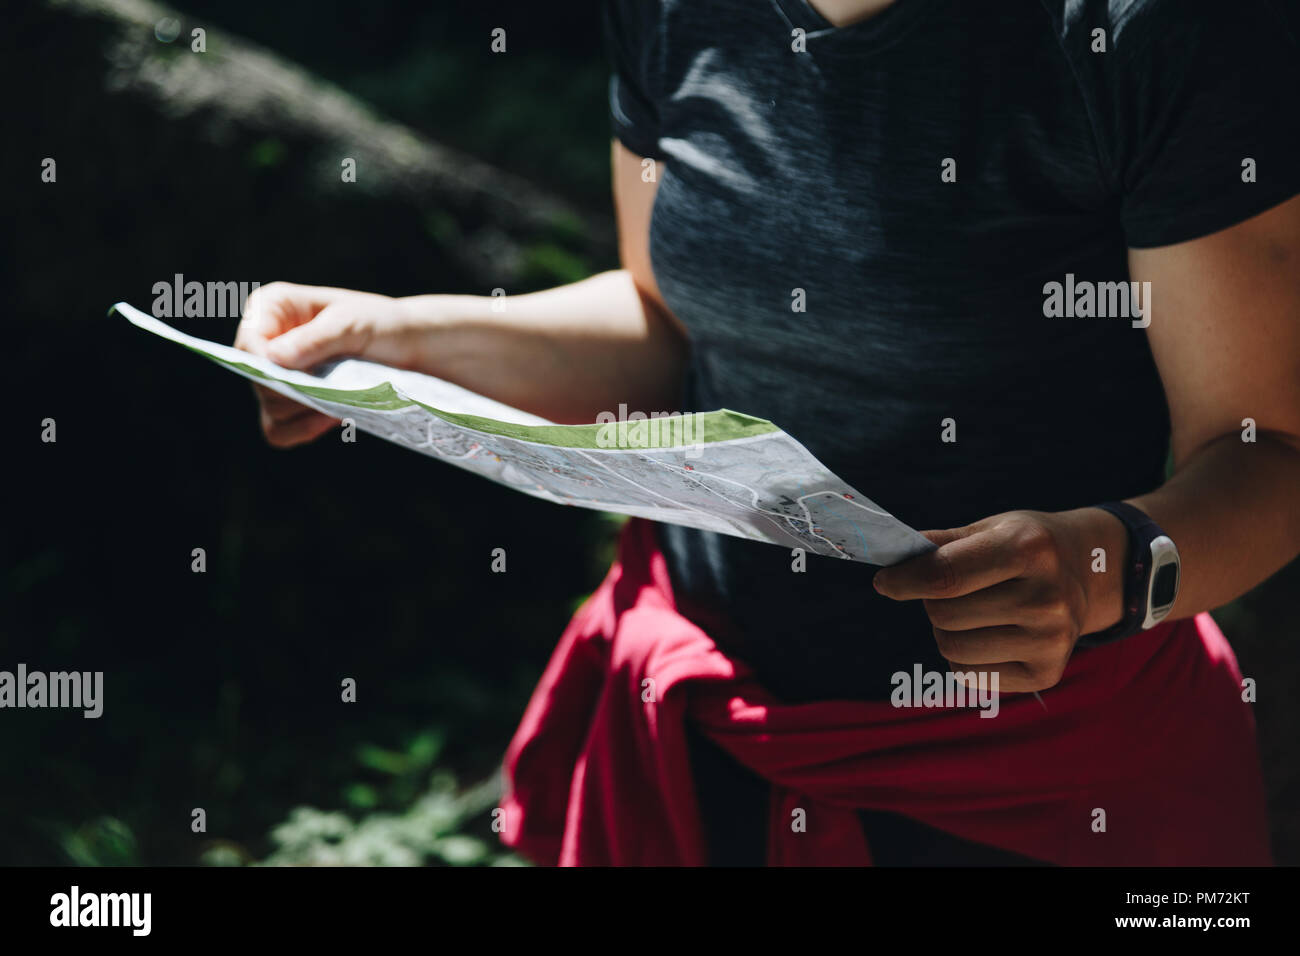 Close-up of a woman reading map orientation concept. - Stock Image